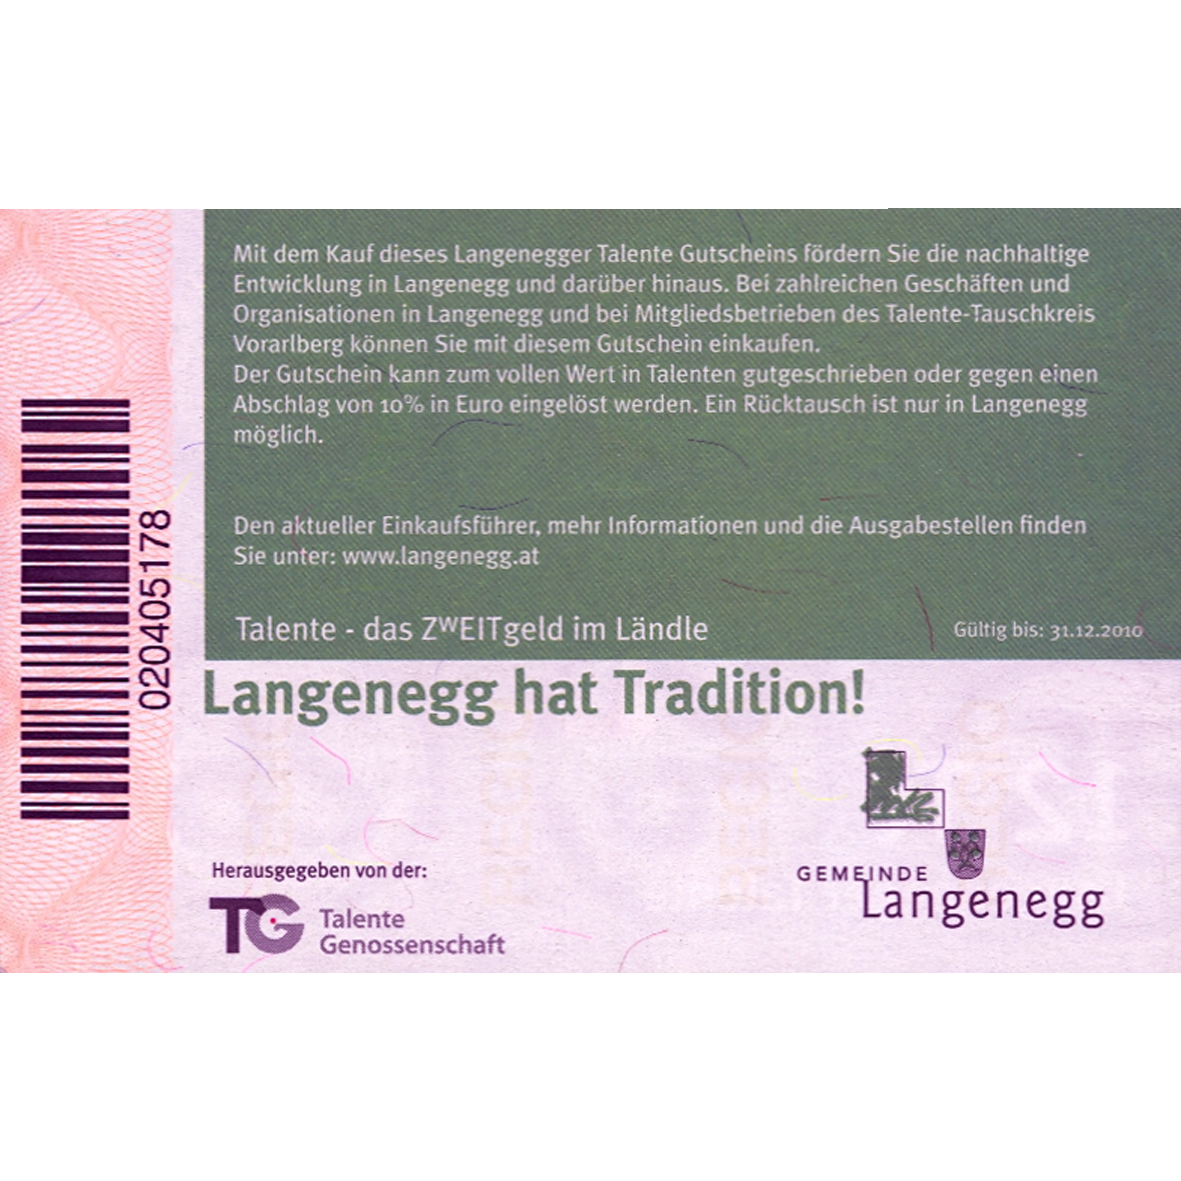 Austria, Community of Langenegg, 12 Langenegger Talents, valid until 12/31/2010 (reverse)